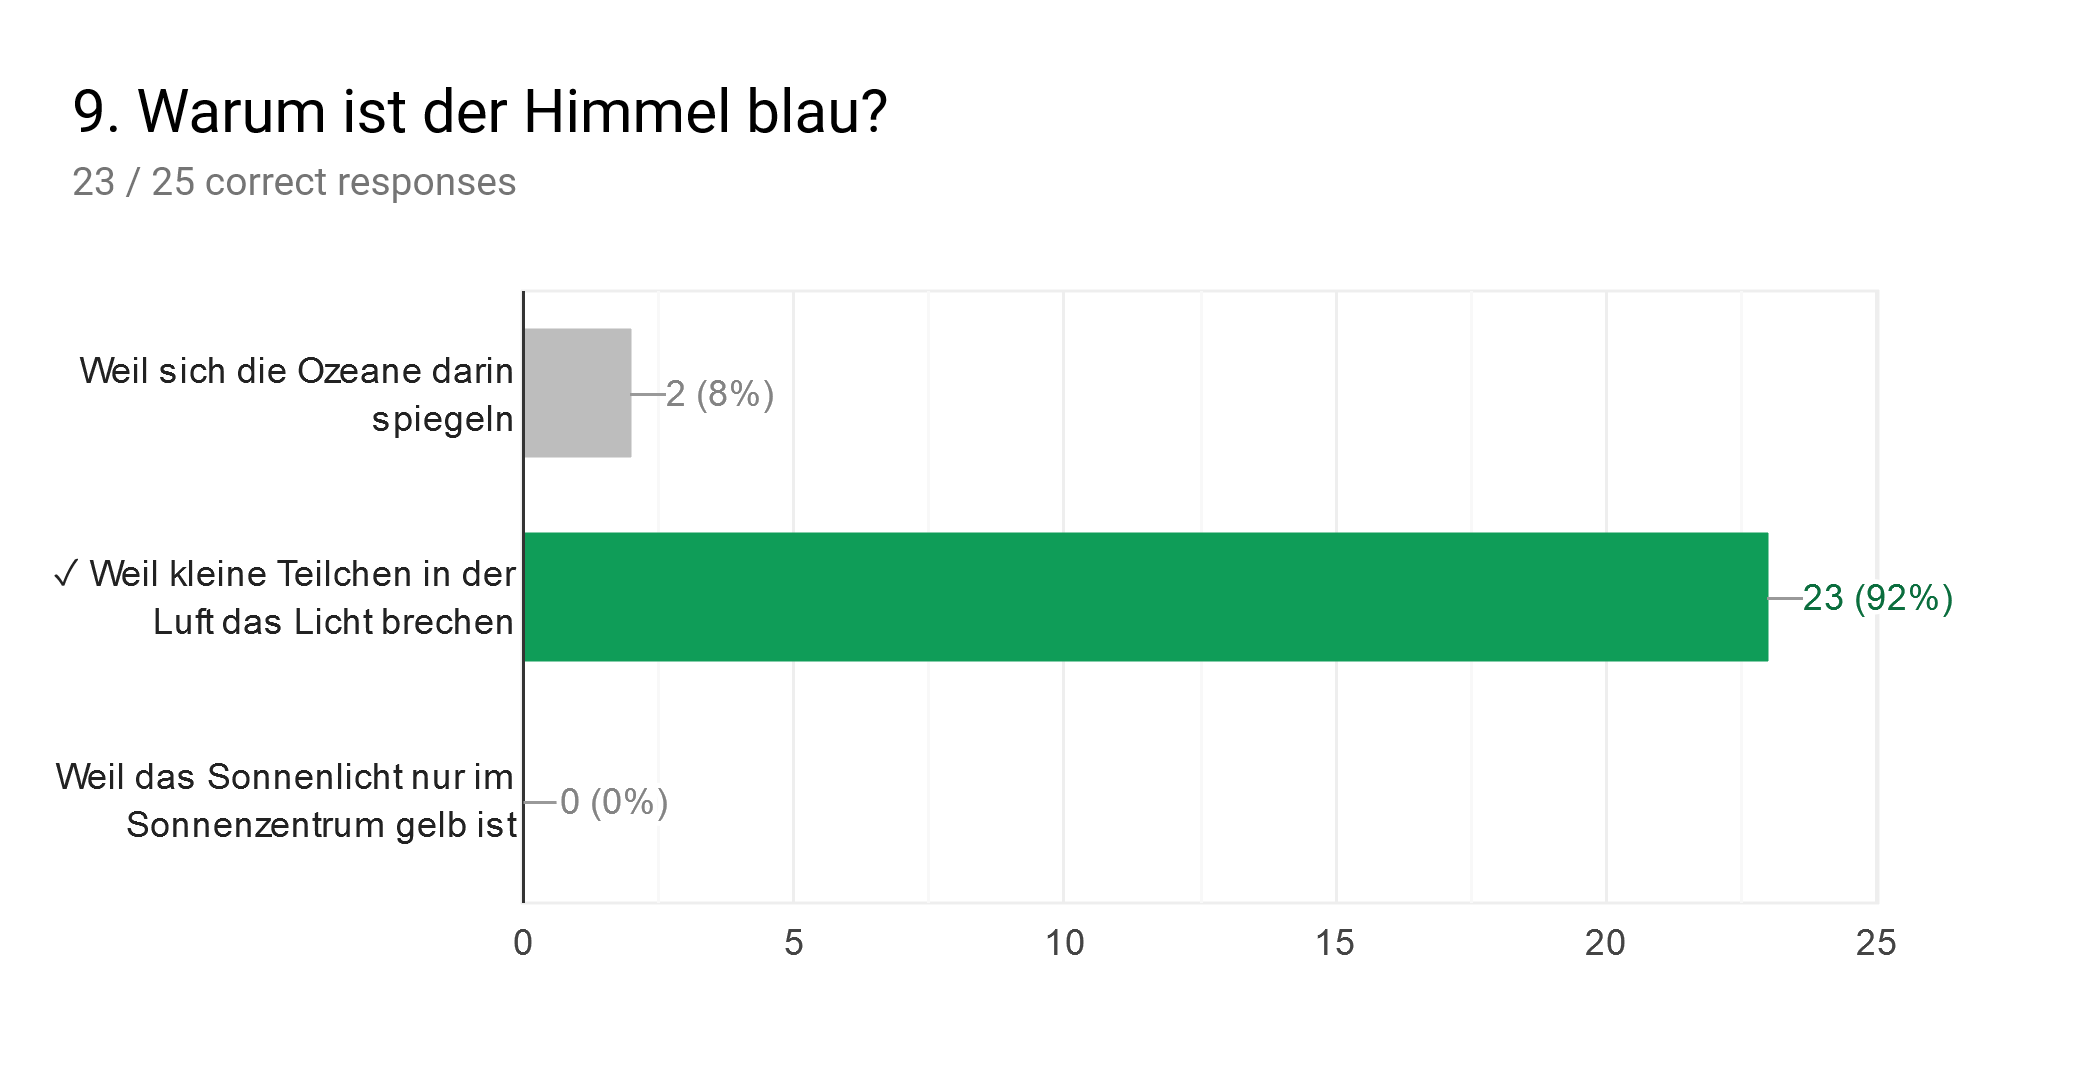 Forms response chart. Question title: 9. Warum ist der Himmel blau?. Number of responses: 23 / 25 correct responses.